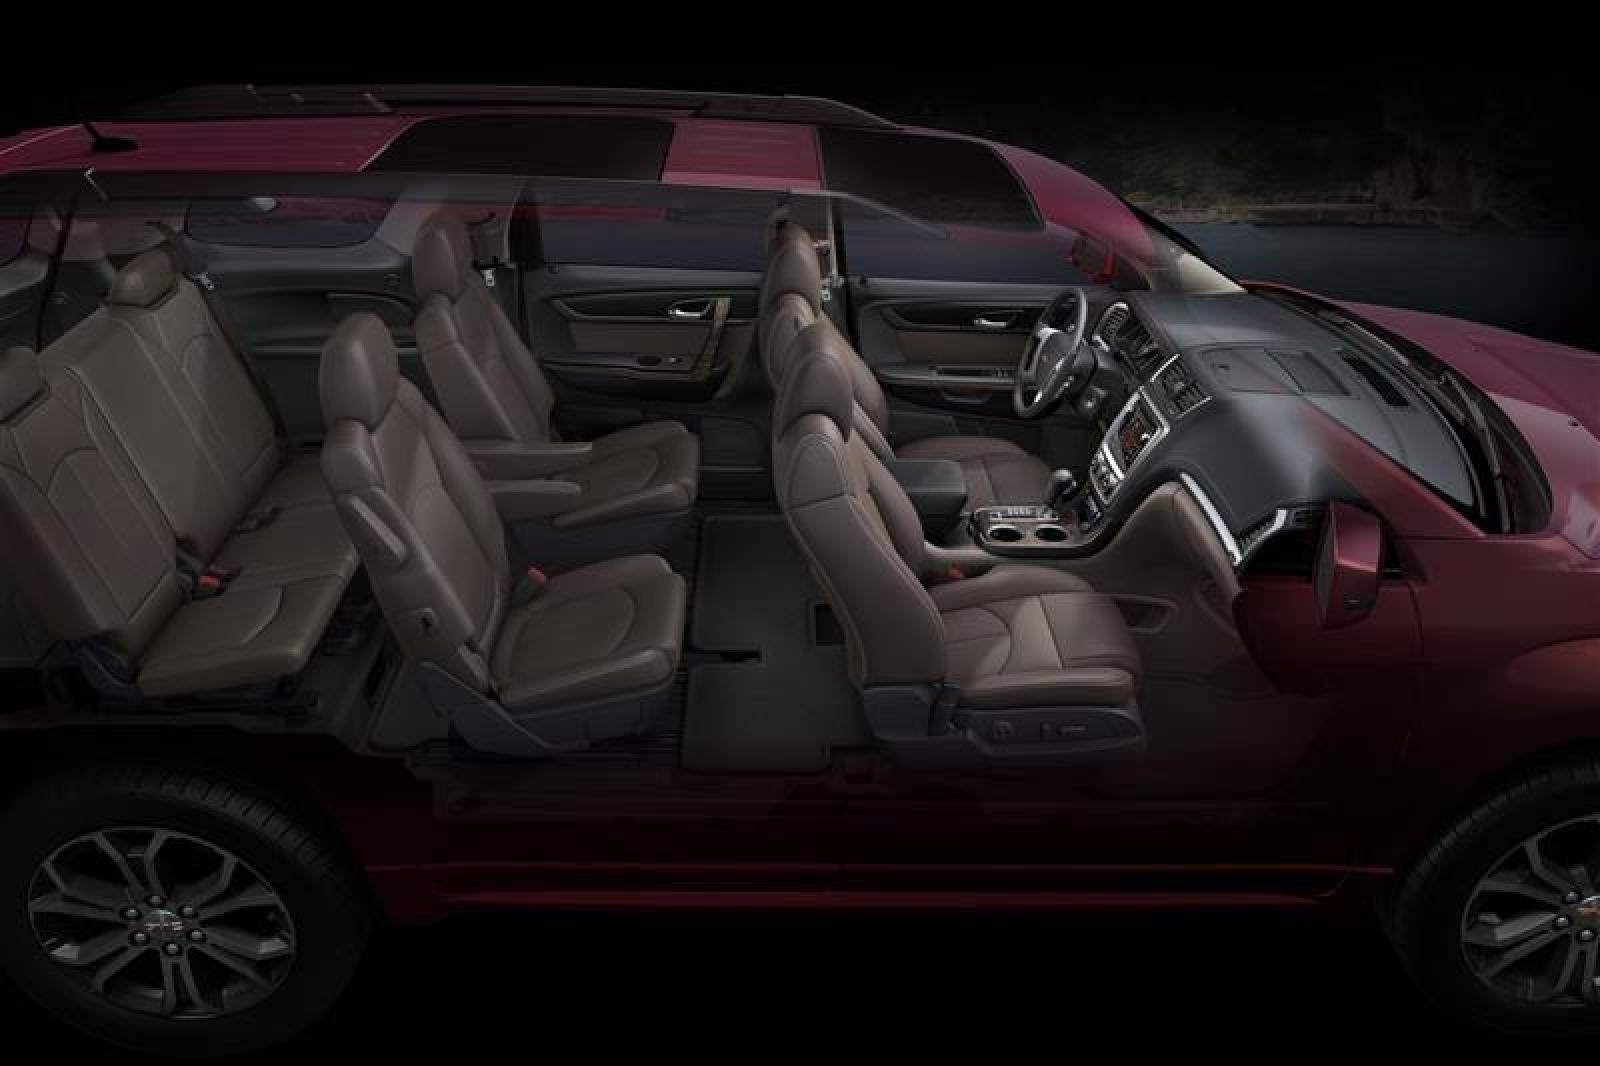 2013 GMC Acadia   Information and photos   ZombieDrive 800 1024 1280 1600 origin 2013 GMC Acadia